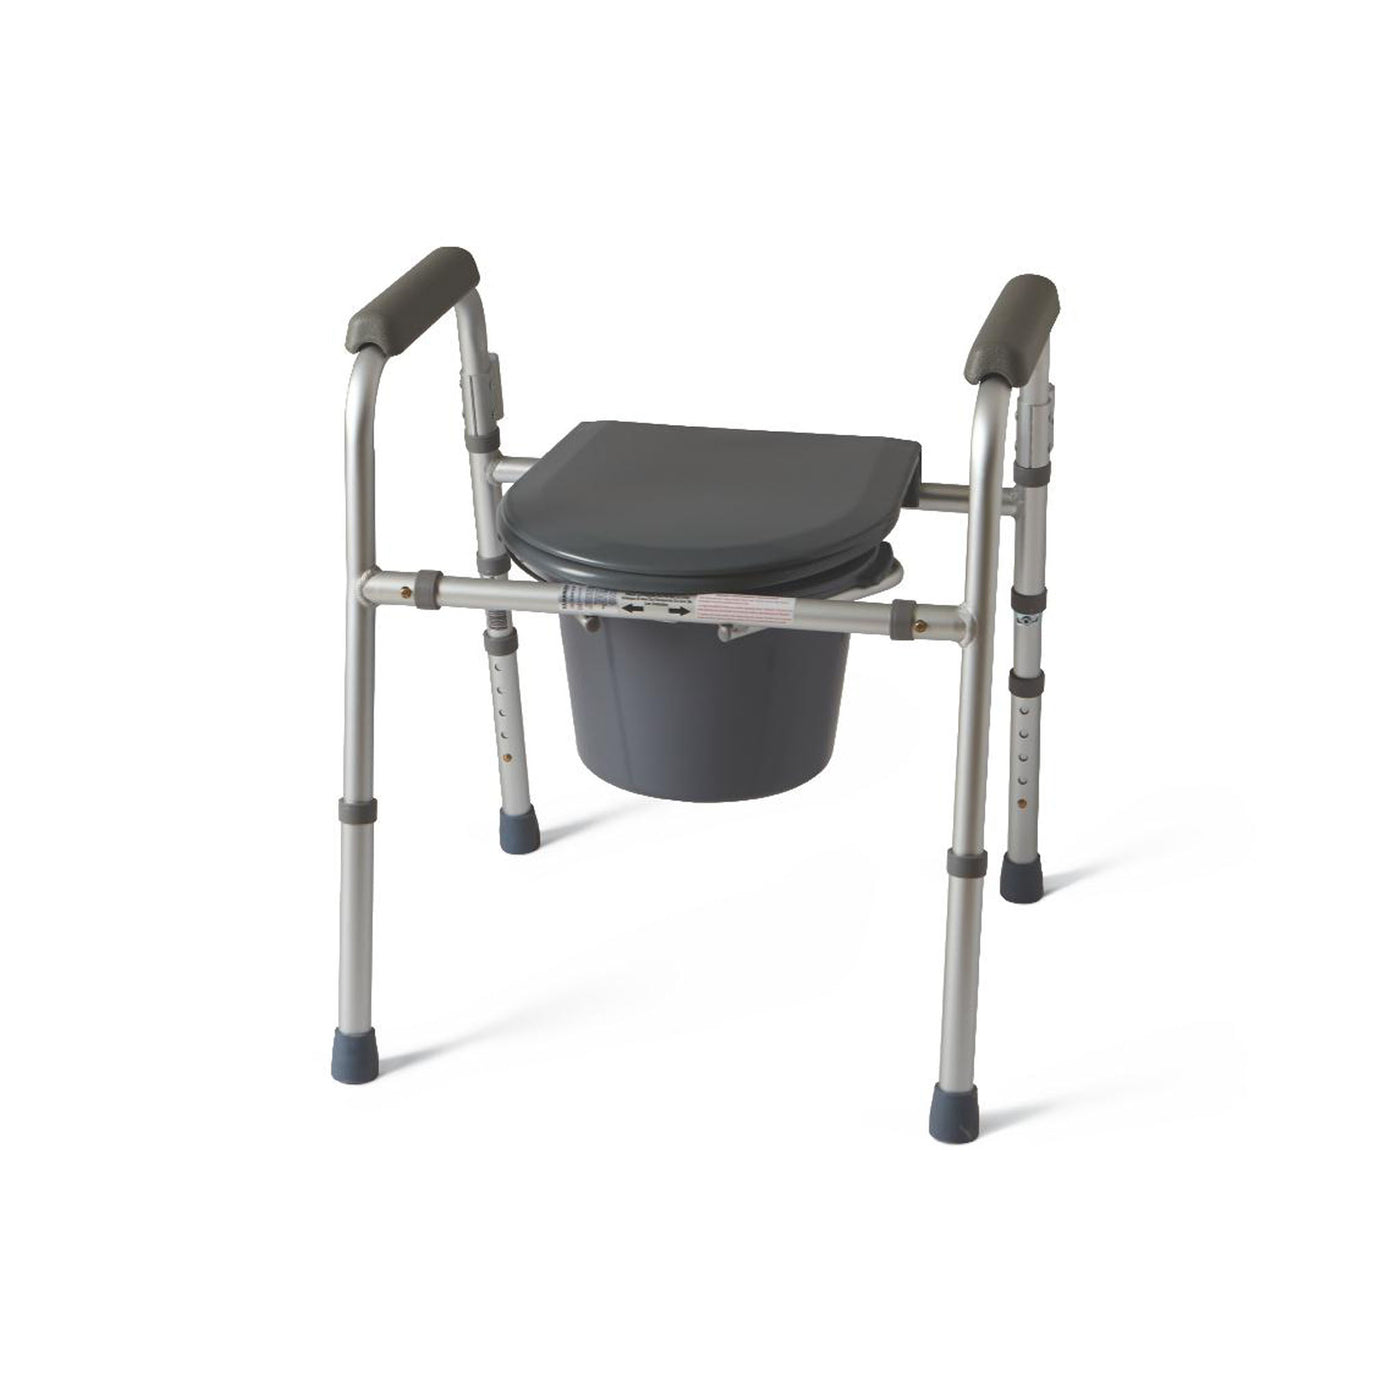 Medline Guardian Folding 3-In-1 Commode at Meridian Medical Supply